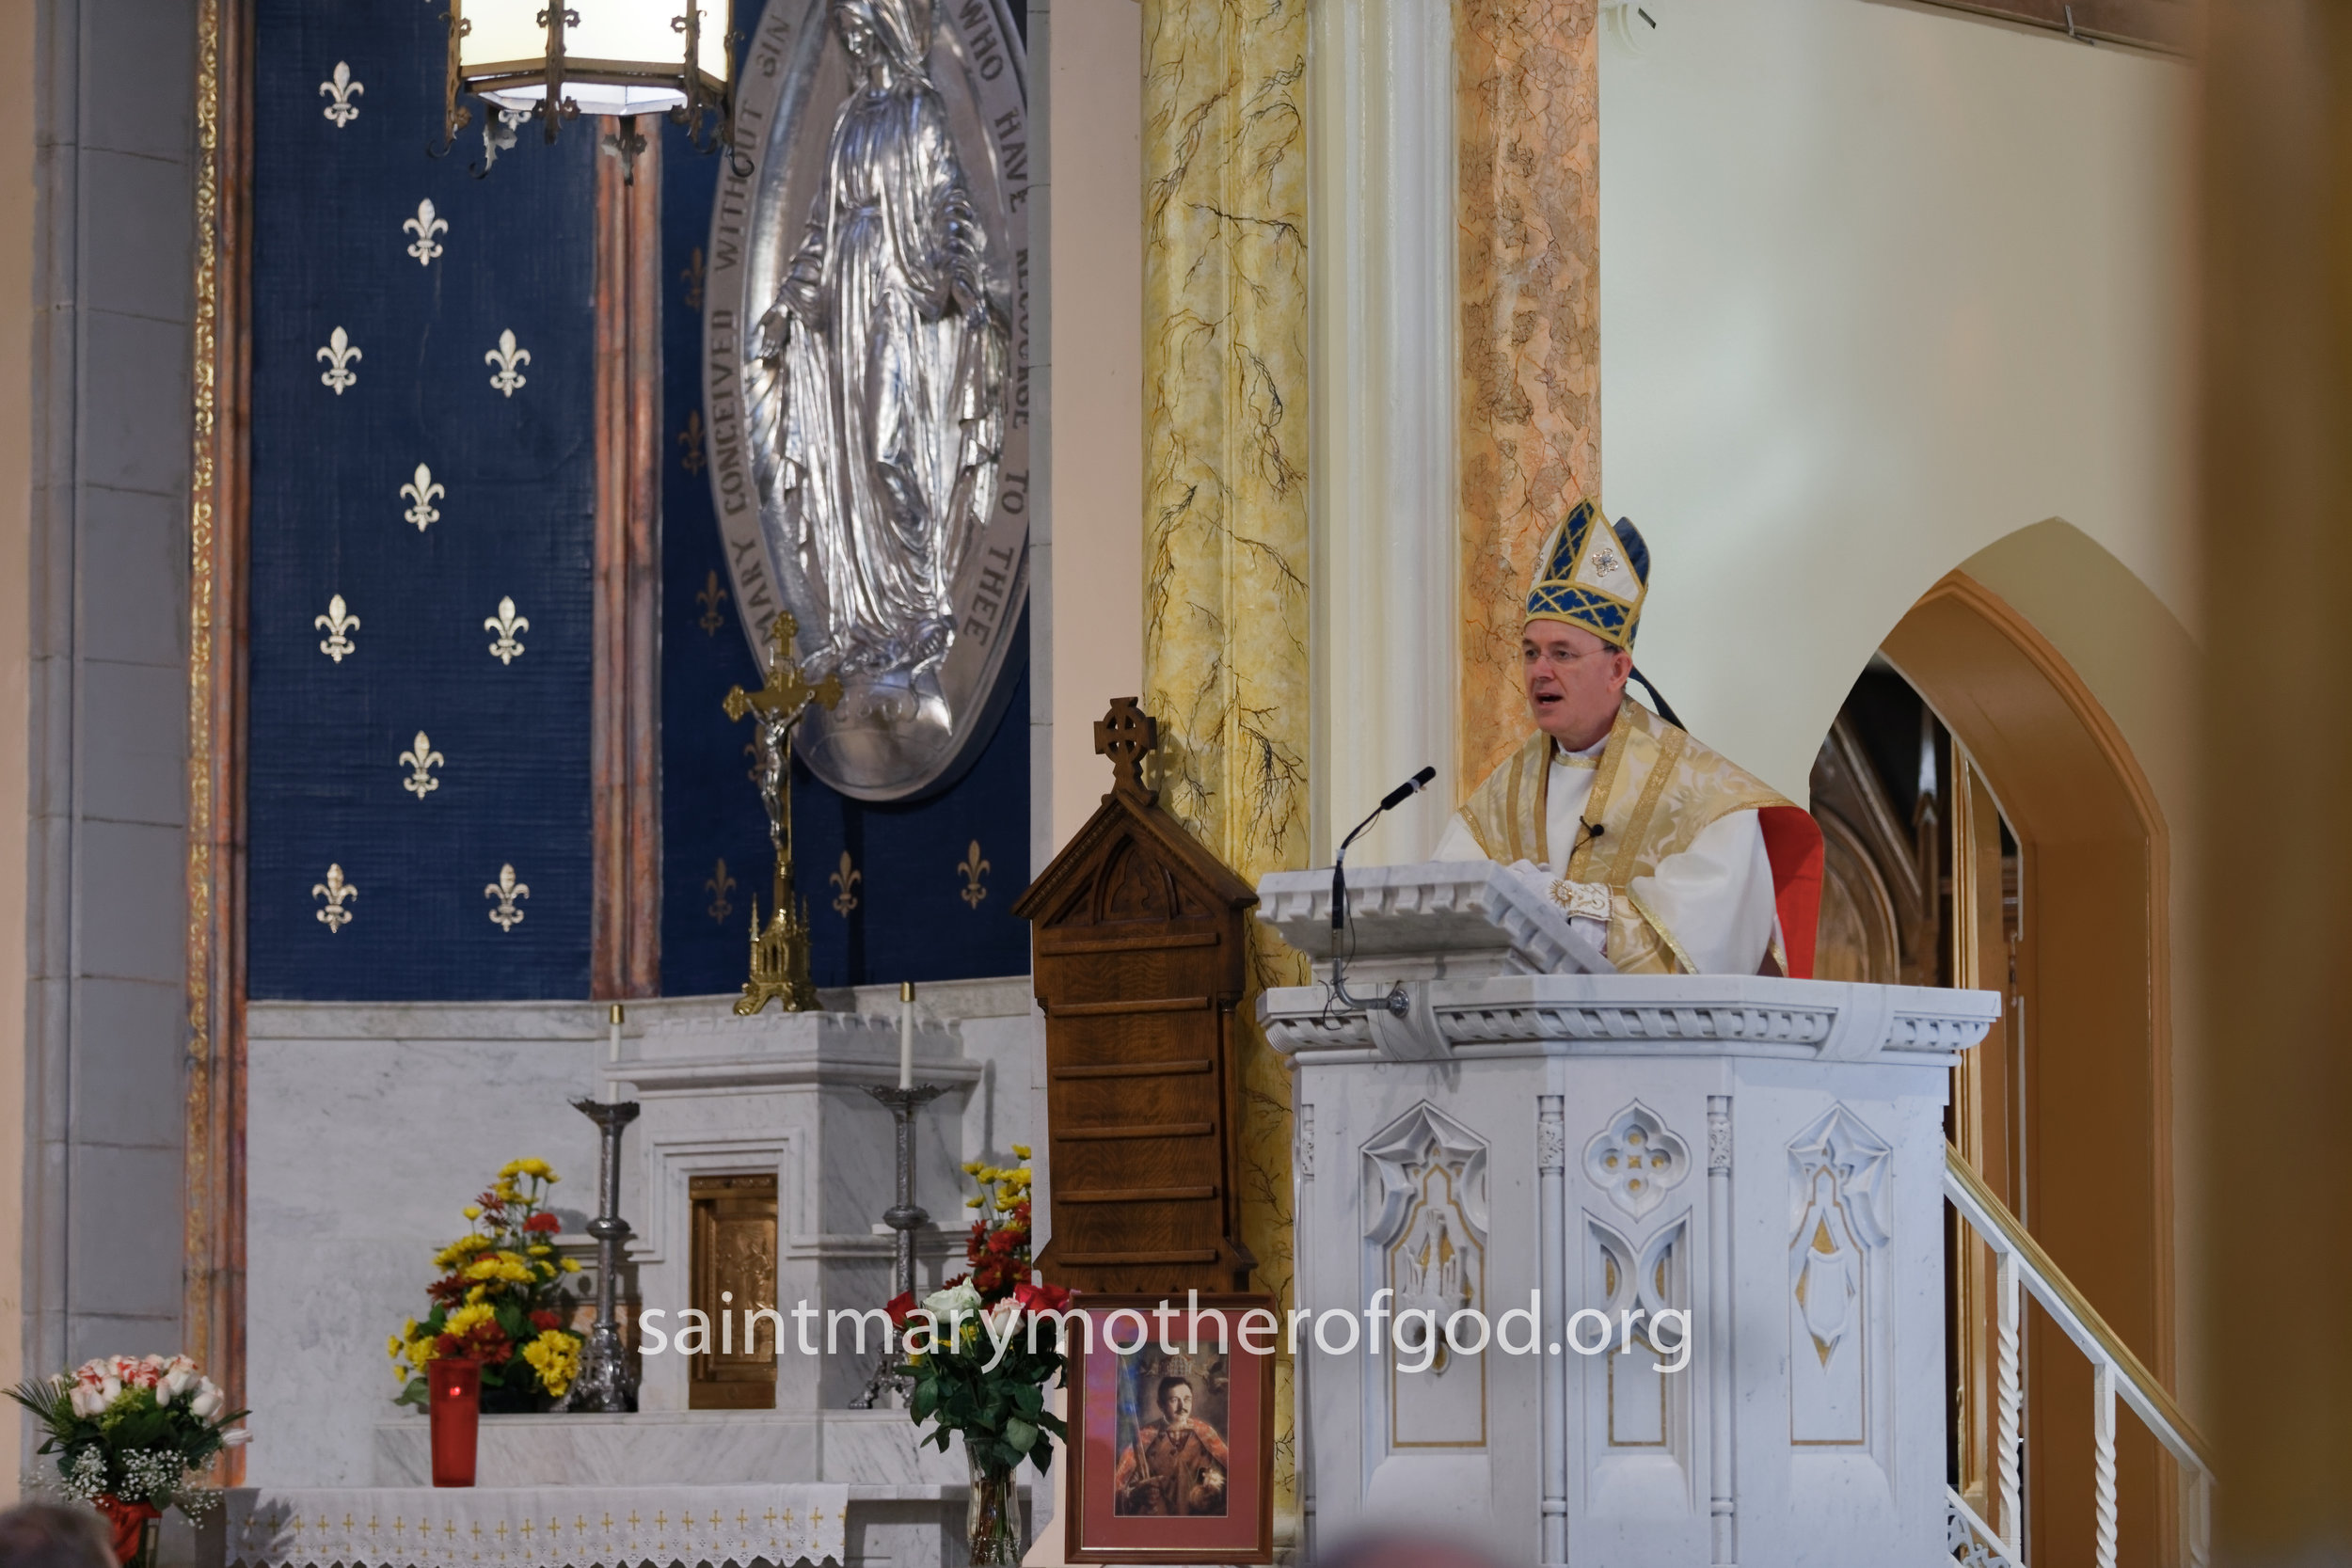 Saint Mary Mother of God Blessed Karl Vitacco Photos-25.jpg